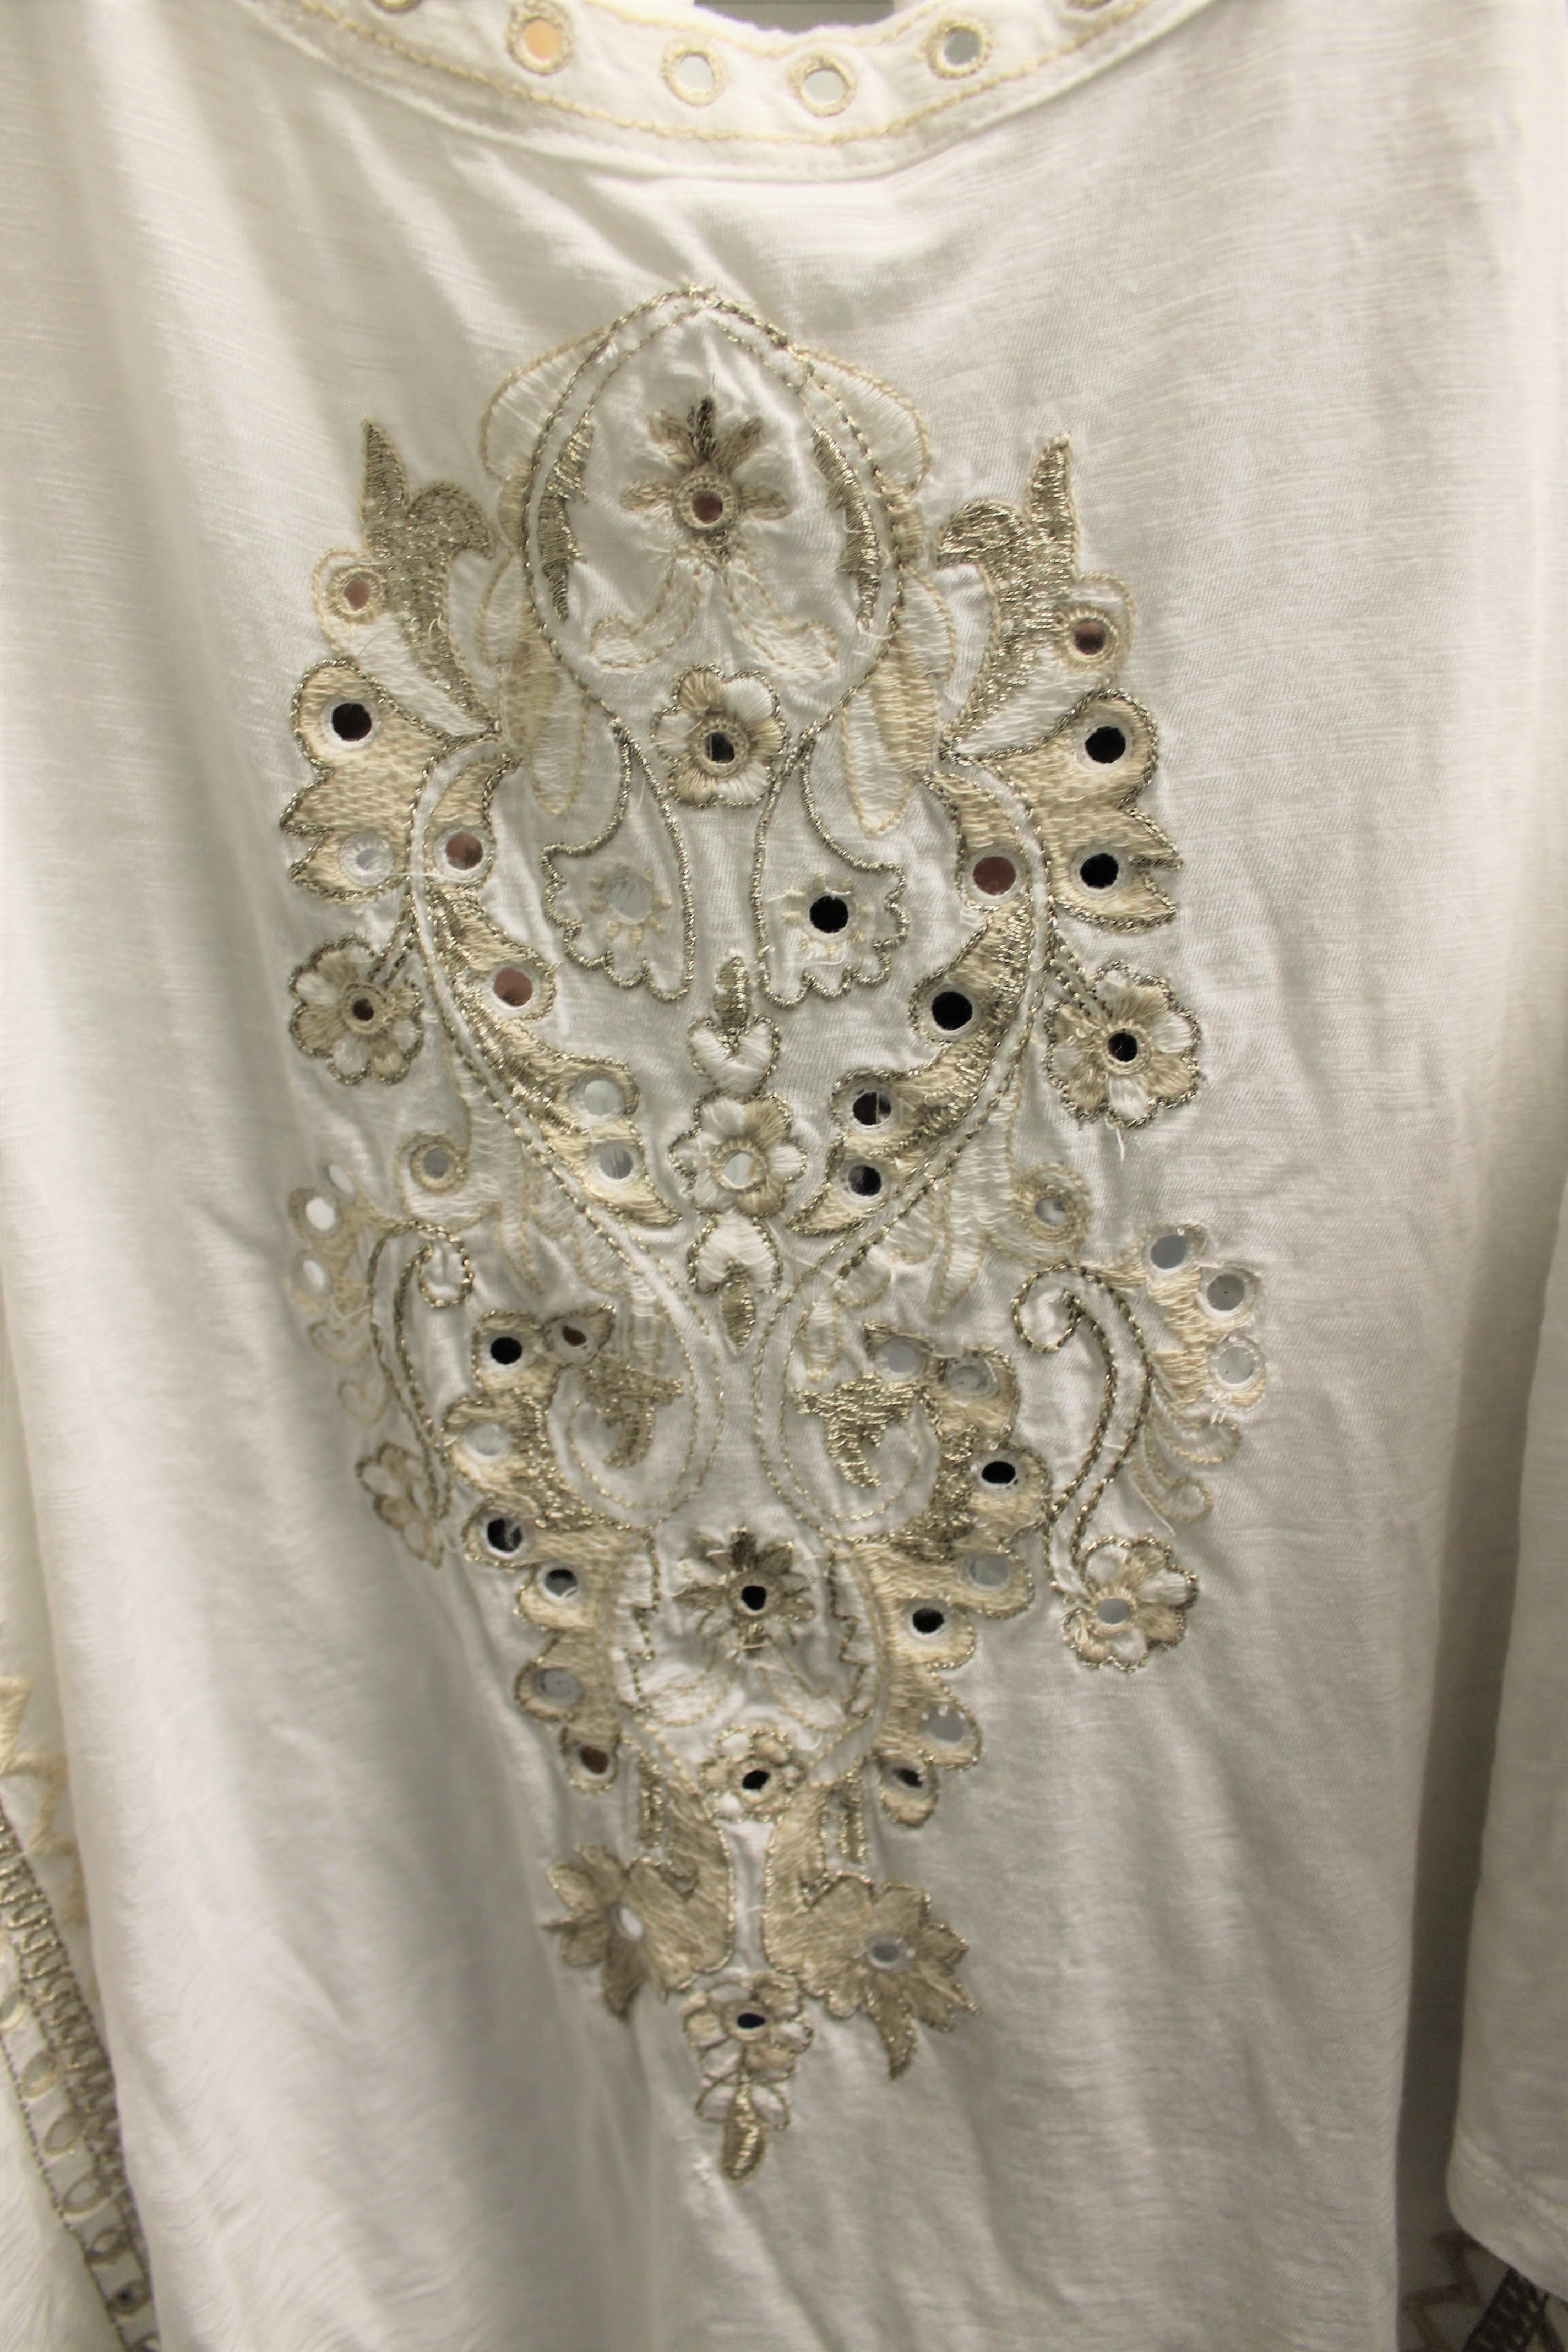 CHICOS-Size-M-white-and-gold-Cotton-Blend-Embroidered-Short-Sleeve-Top_89490C.jpg